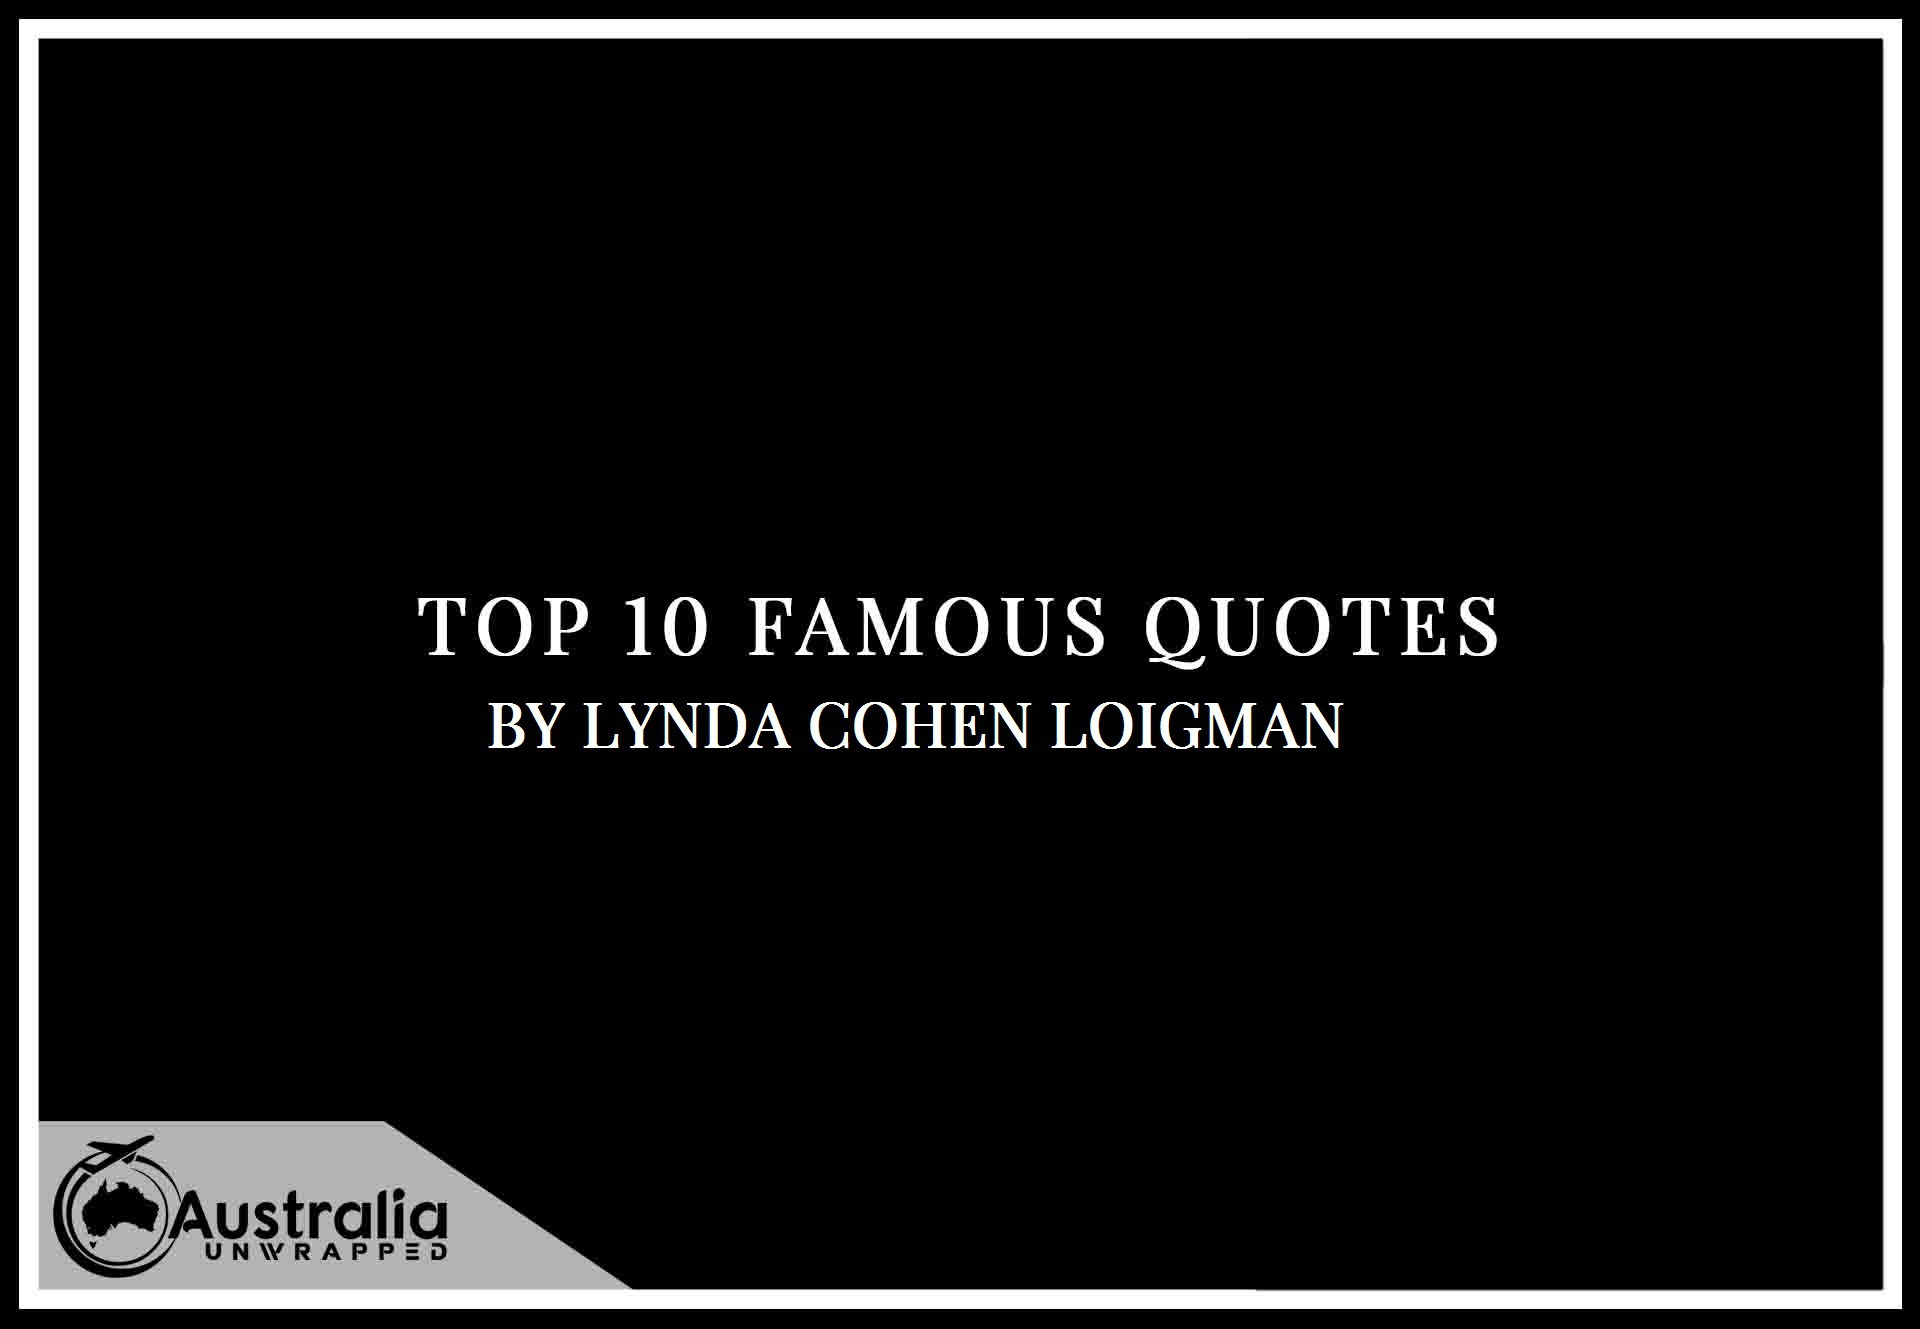 Lynda Cohen Loigman's Top 10 Popular and Famous Quotes